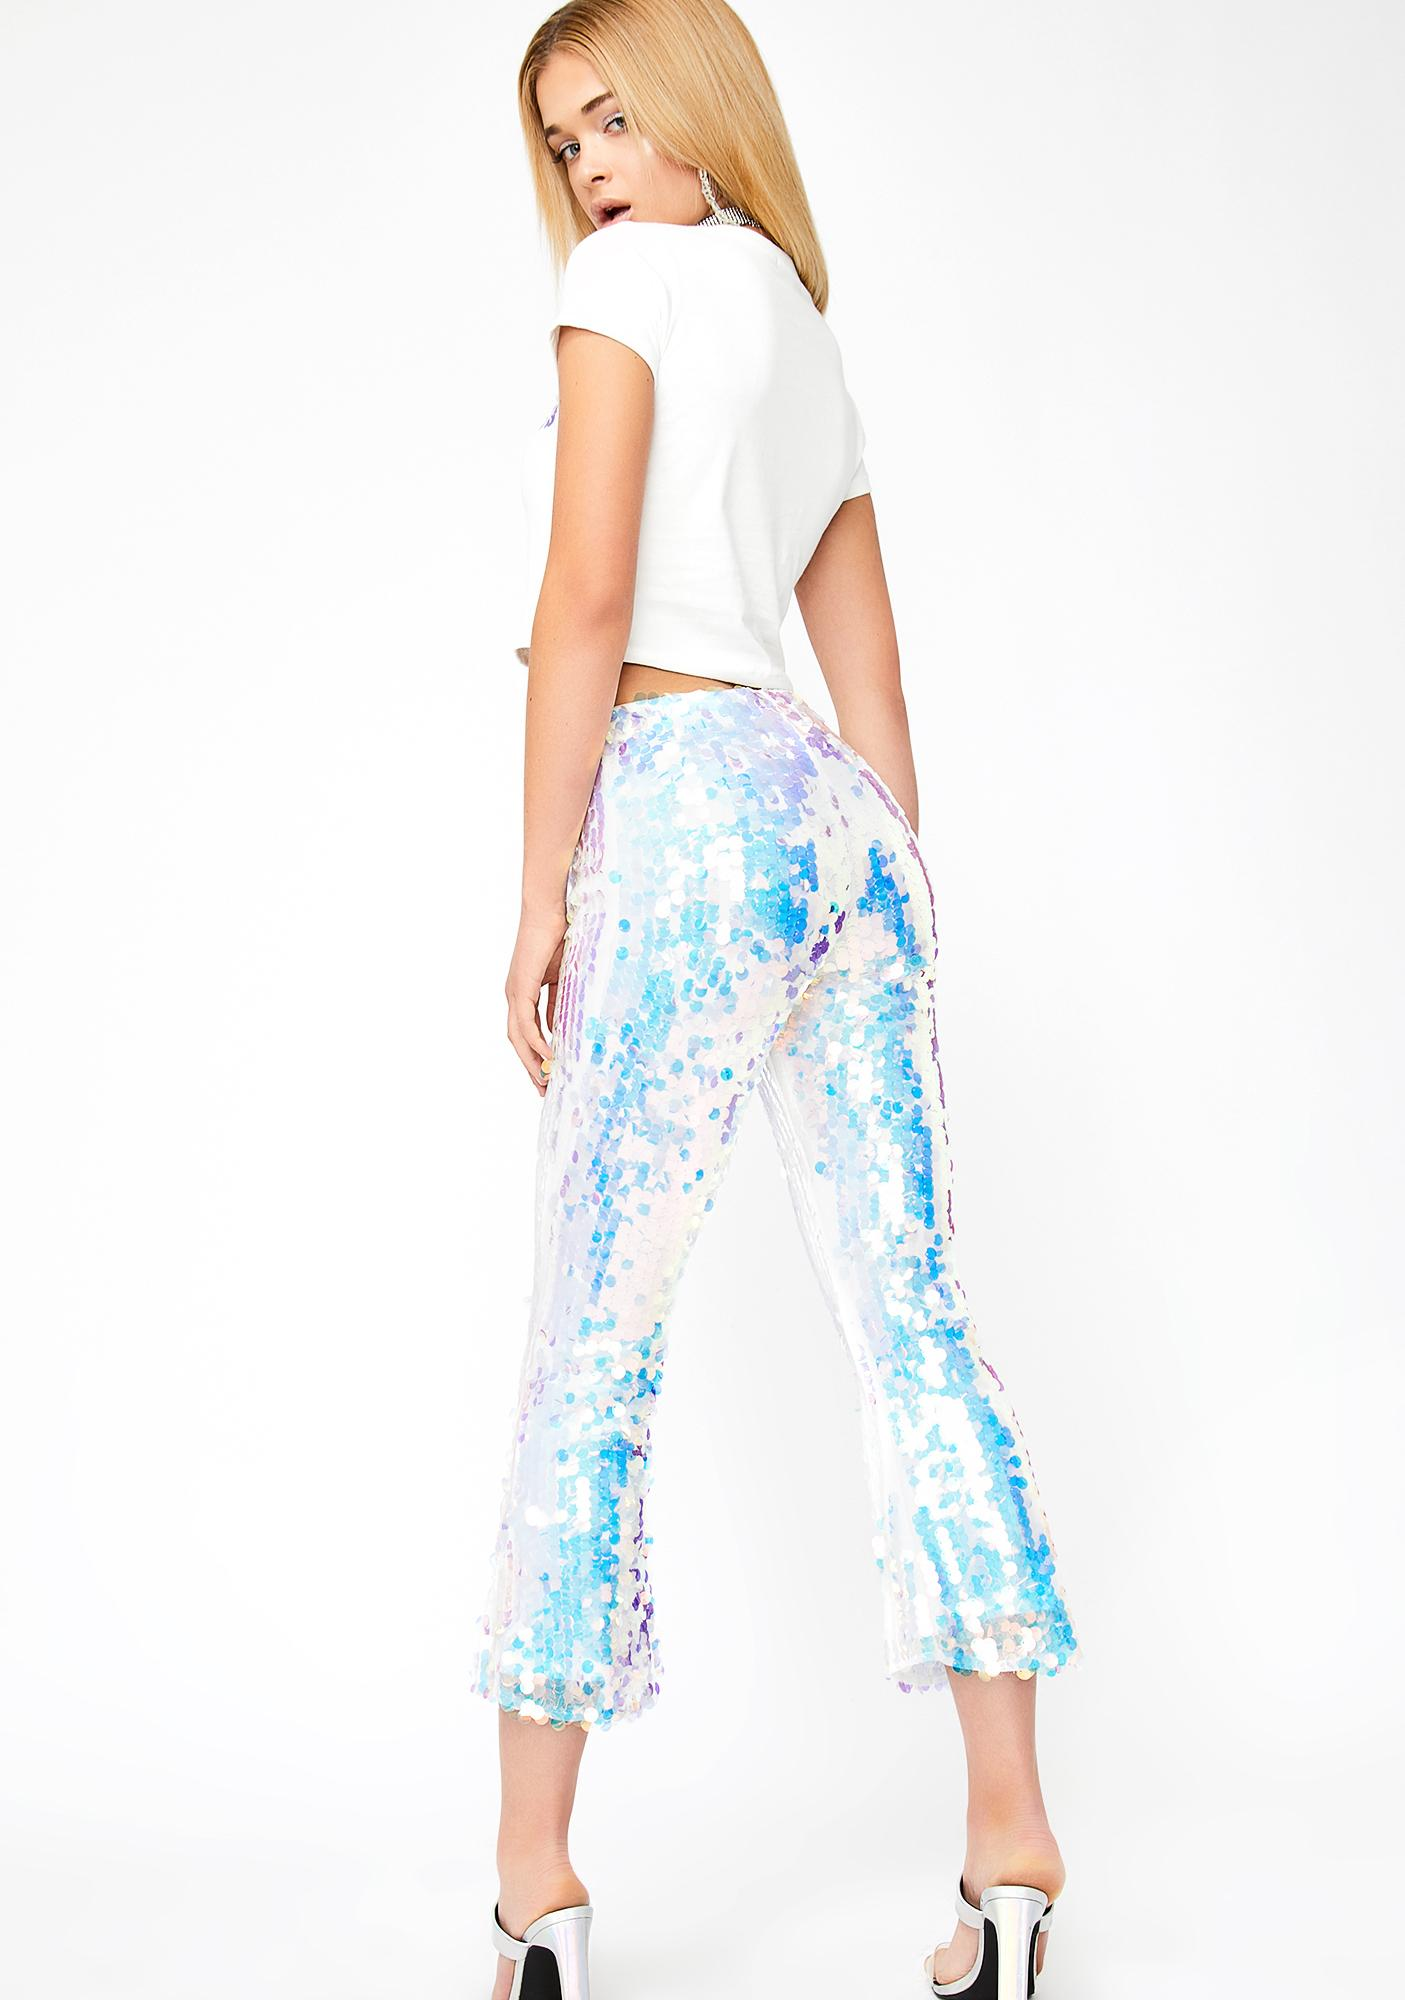 HOROSCOPEZ Goddess Realm Sequin Pants